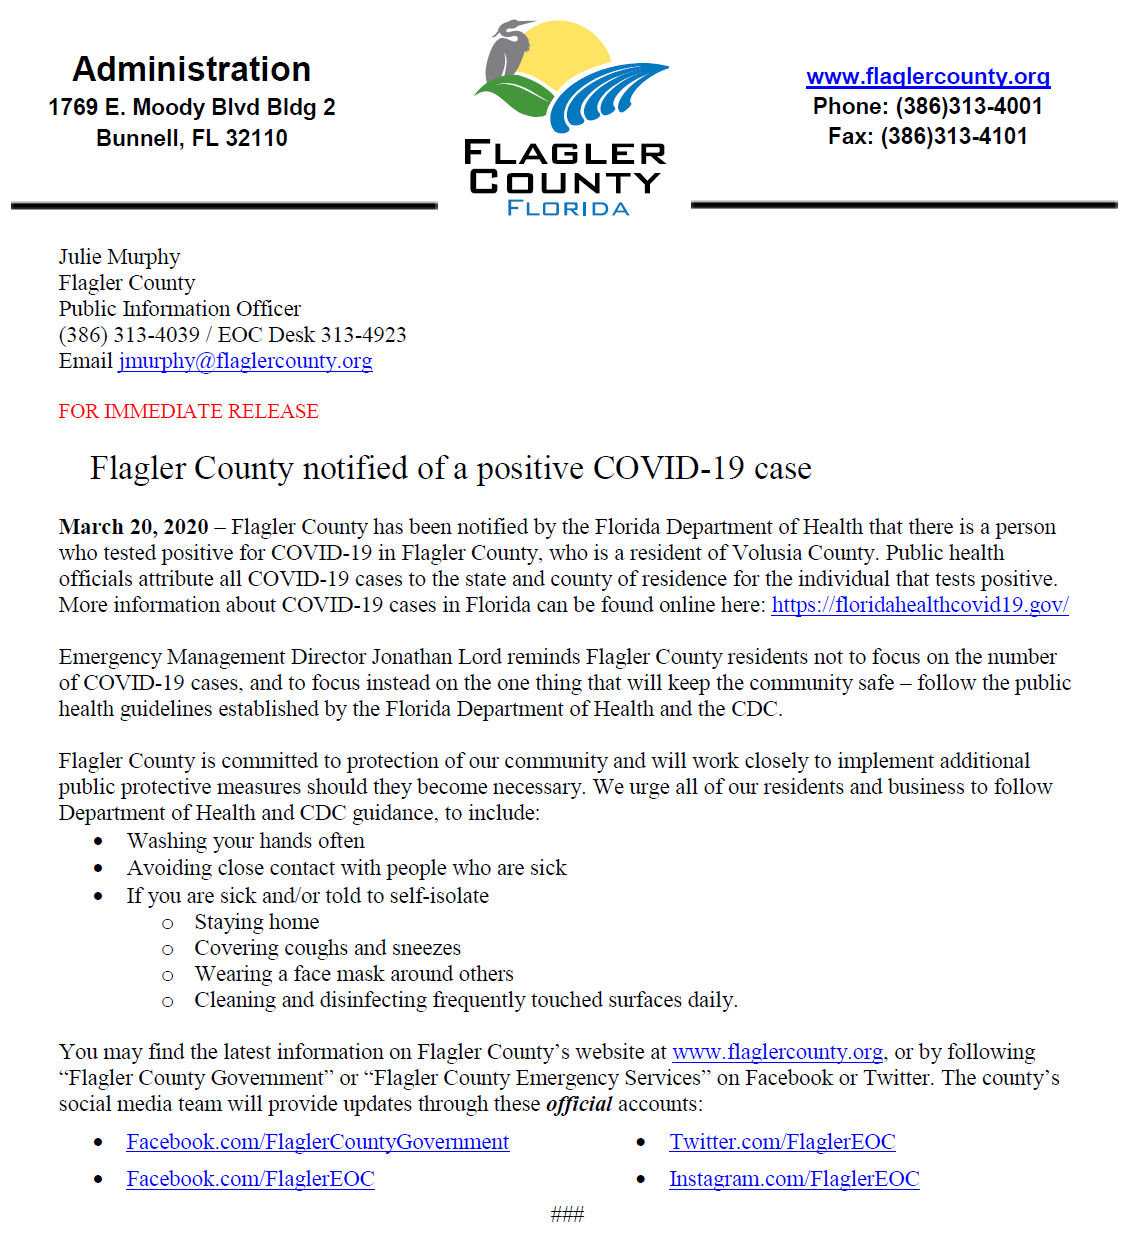 Flagler County notified of a positive COVID-19 case